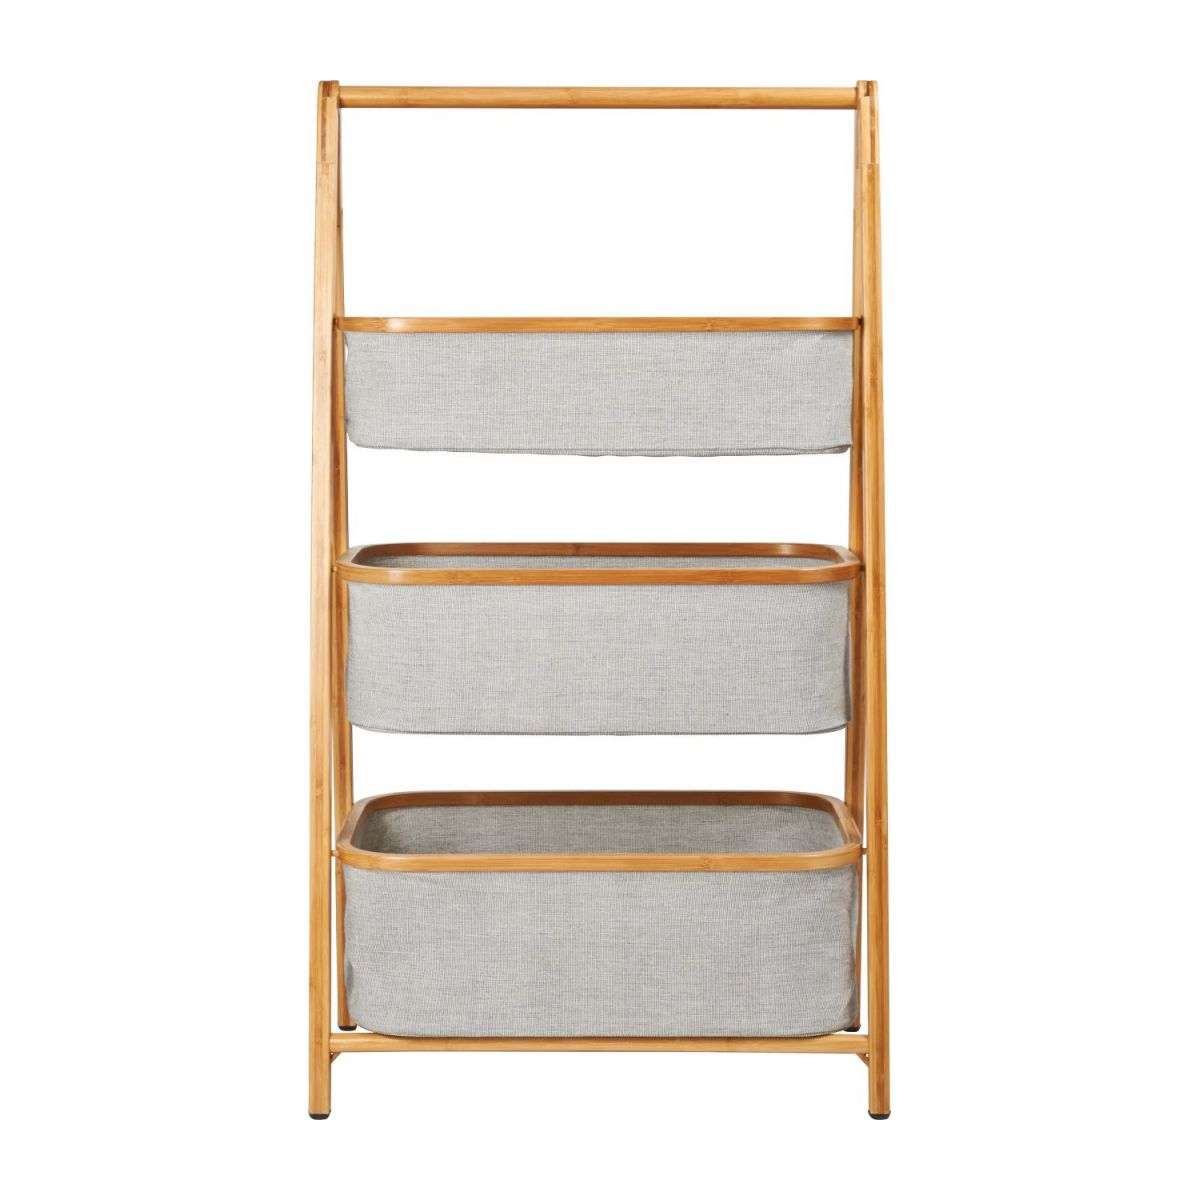 3 baskets shelf made in bamboo n°4